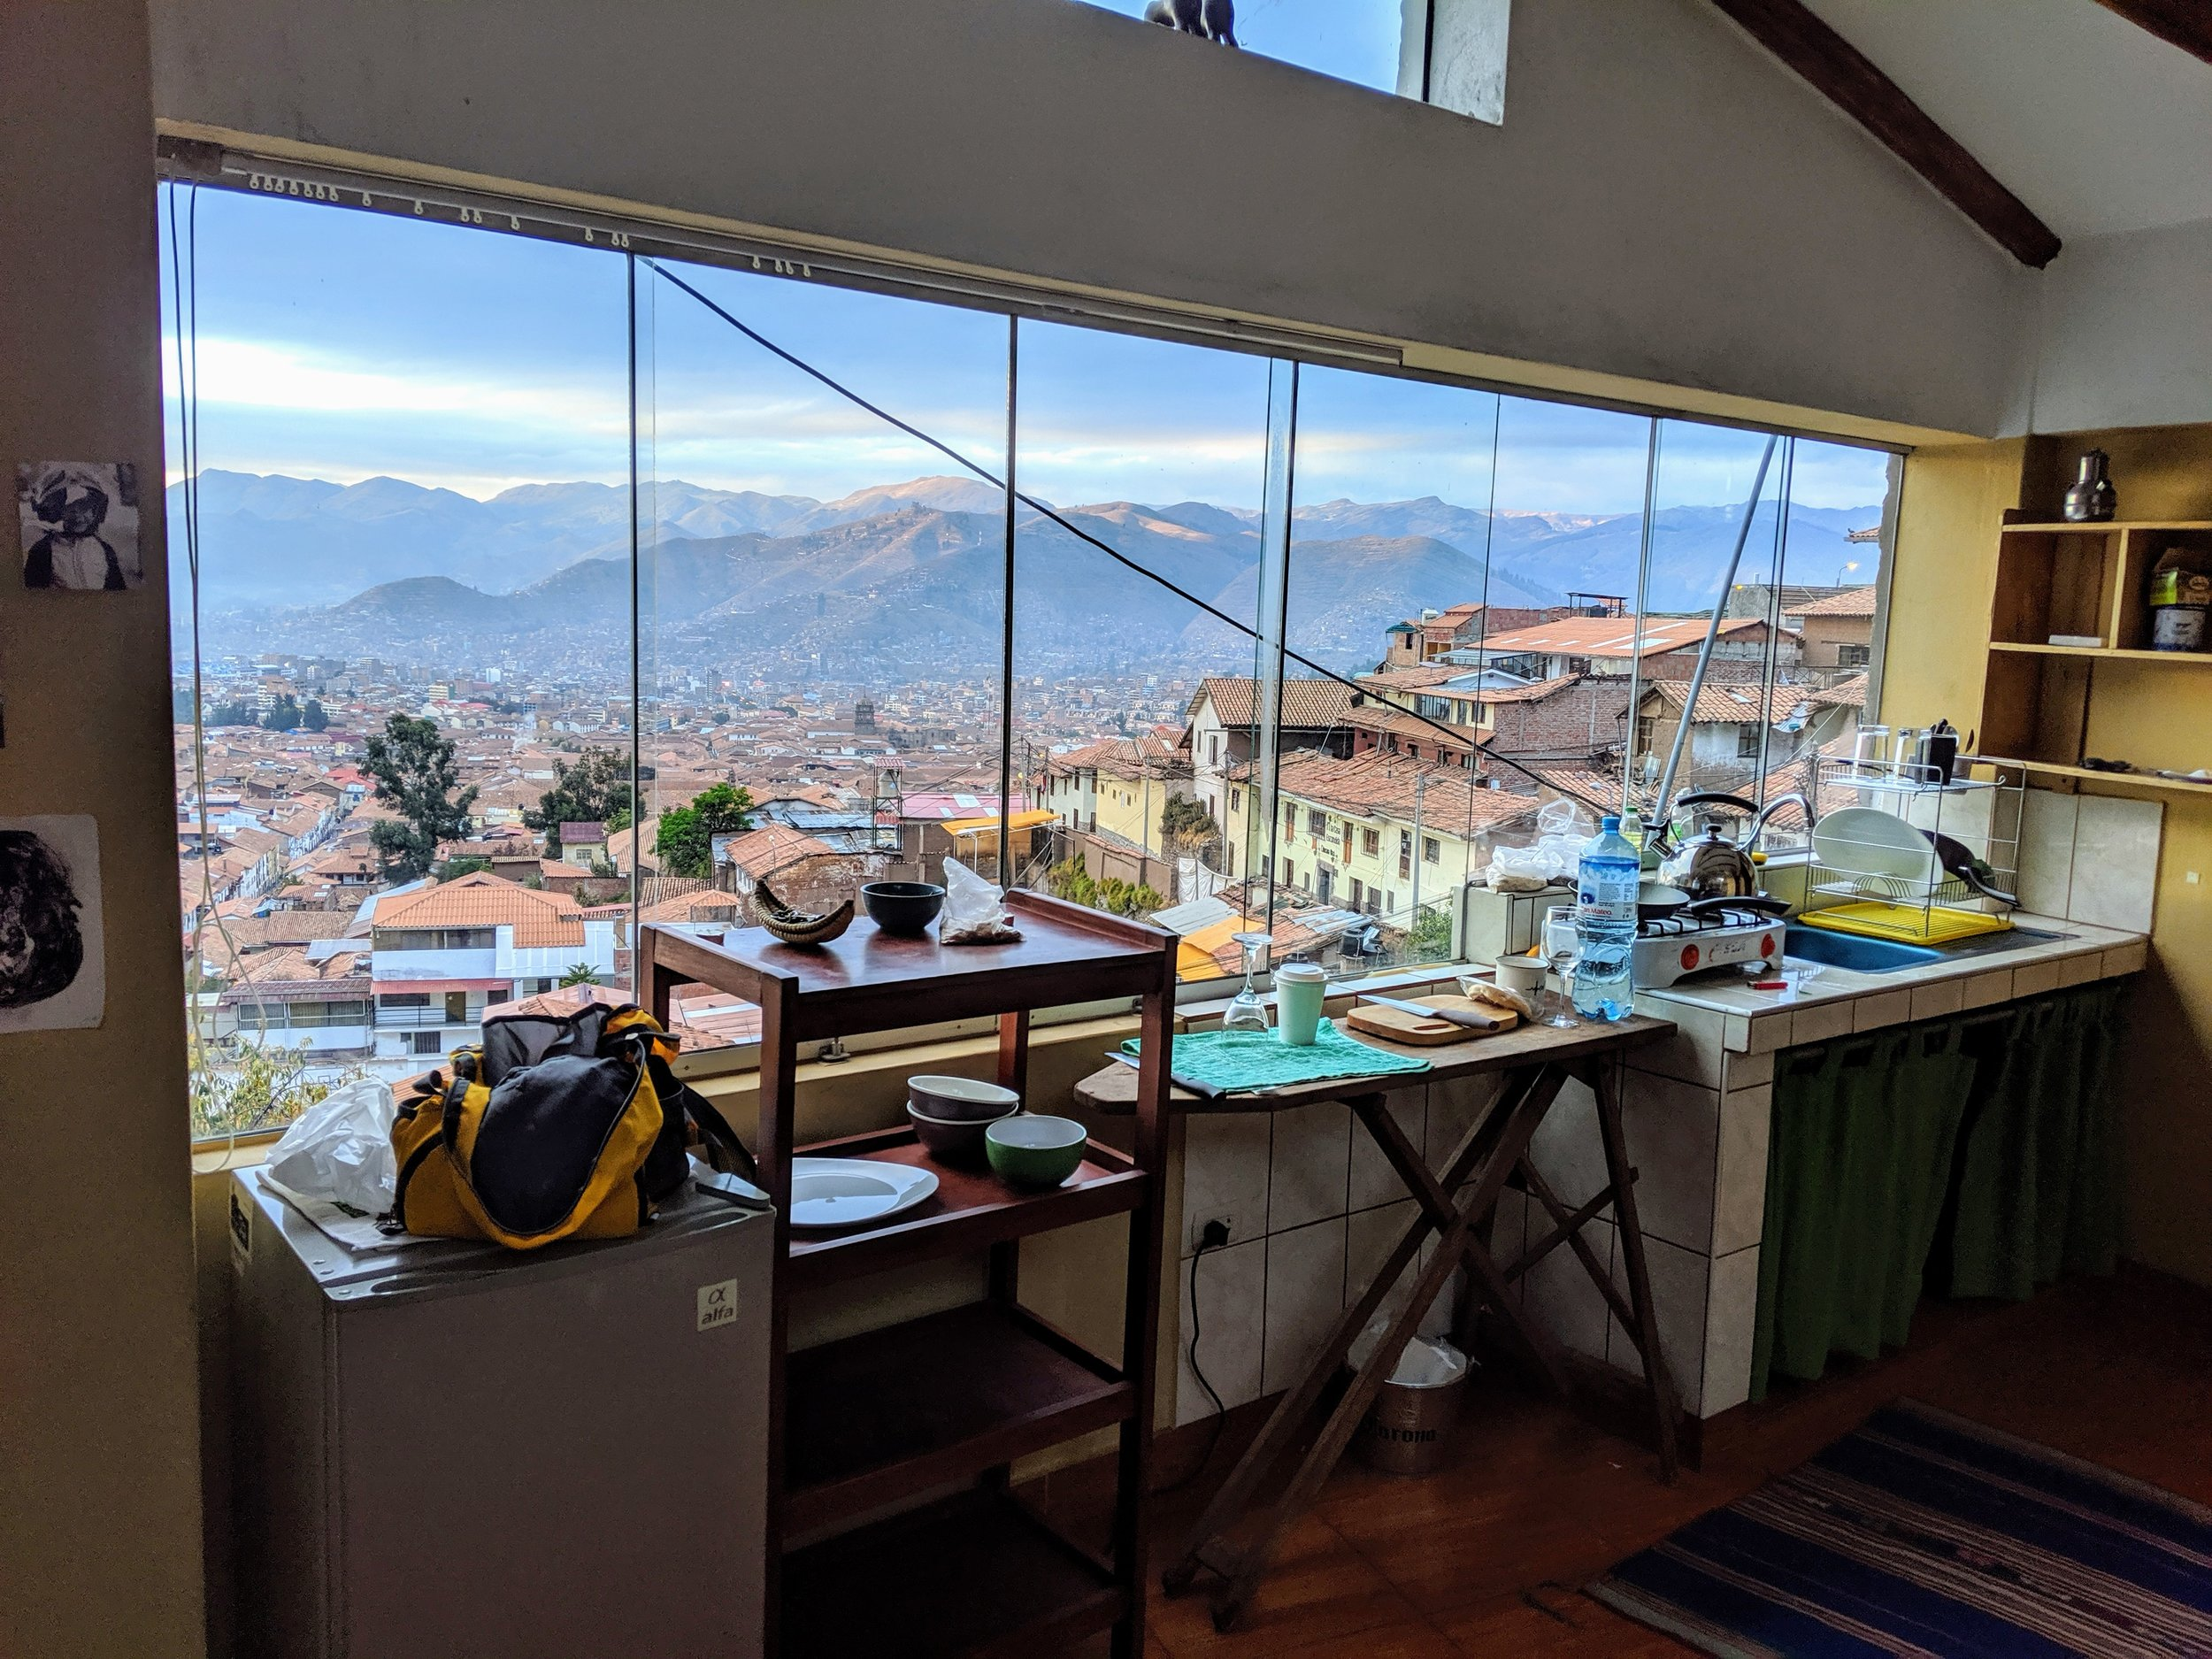 Cusco, Airbnb - Kitchen, gas heater, dinning corner, queen size bed, hot shower! 40 CAD a night by Jose Carlos